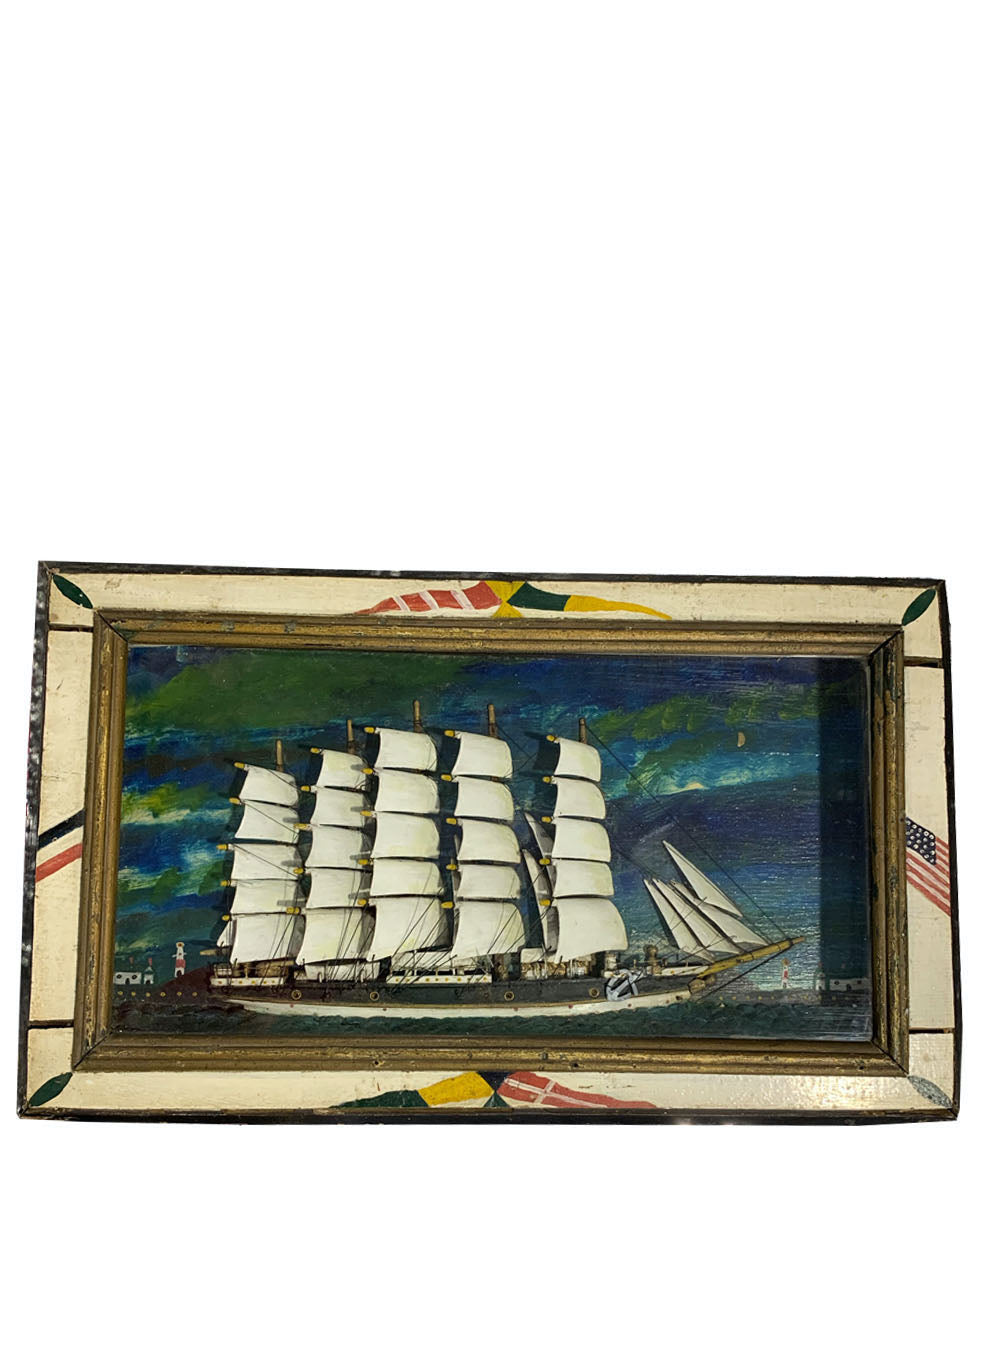 FANTASTIC MID TO LATE 19TH CENTURY AMERICAN SHIP DIORAMA WITH PAINTED FRAME - Accessories - Libertine